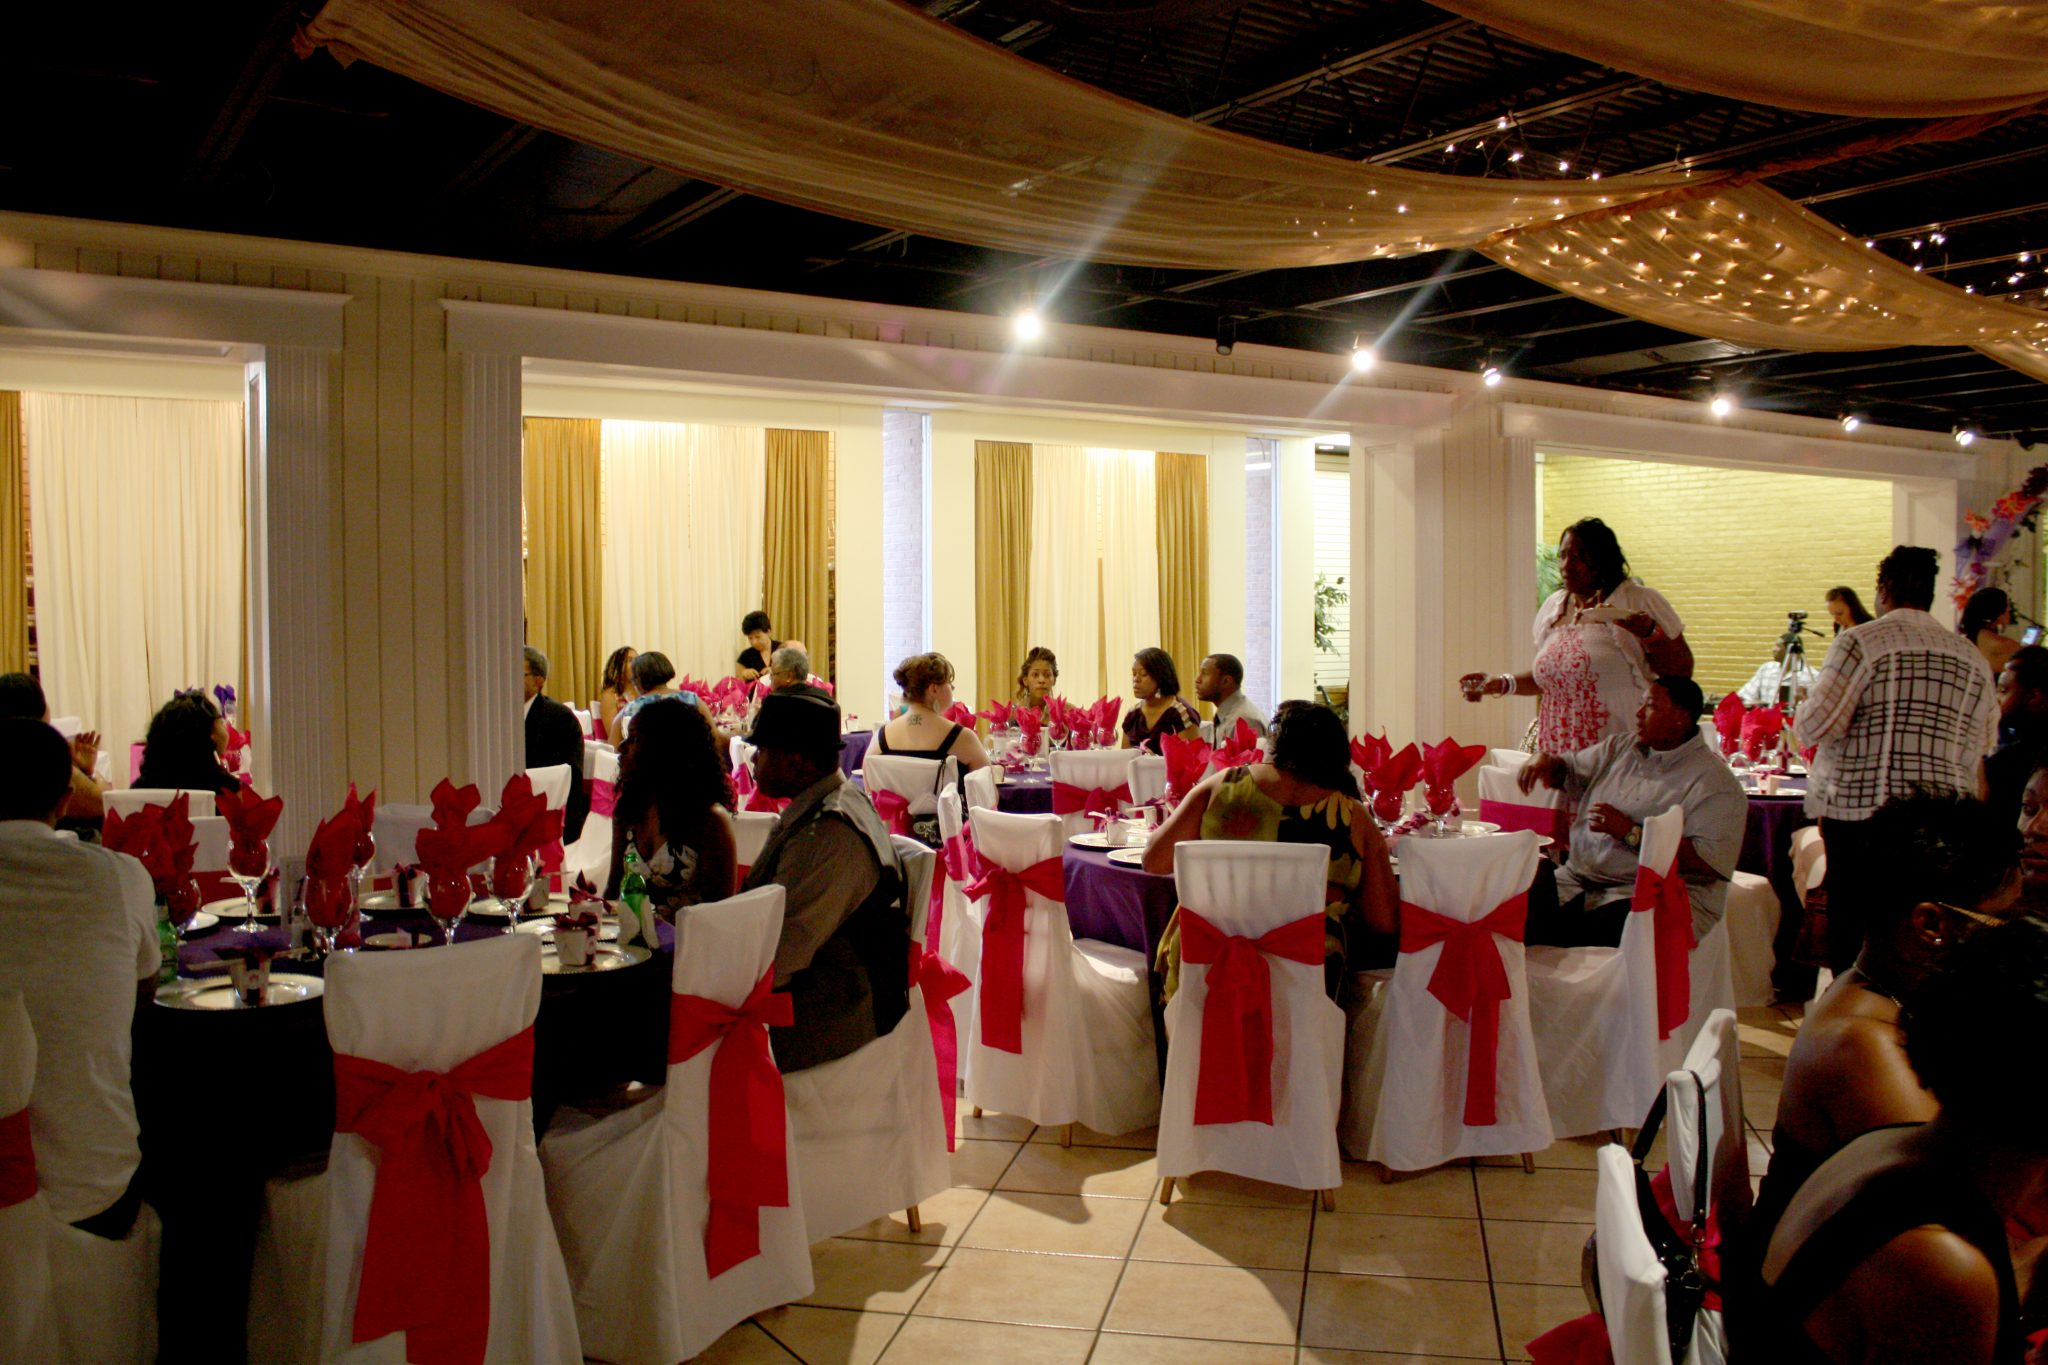 rent wedding chairs and tables where to buy cheap confetti's event center – baltimore's best events